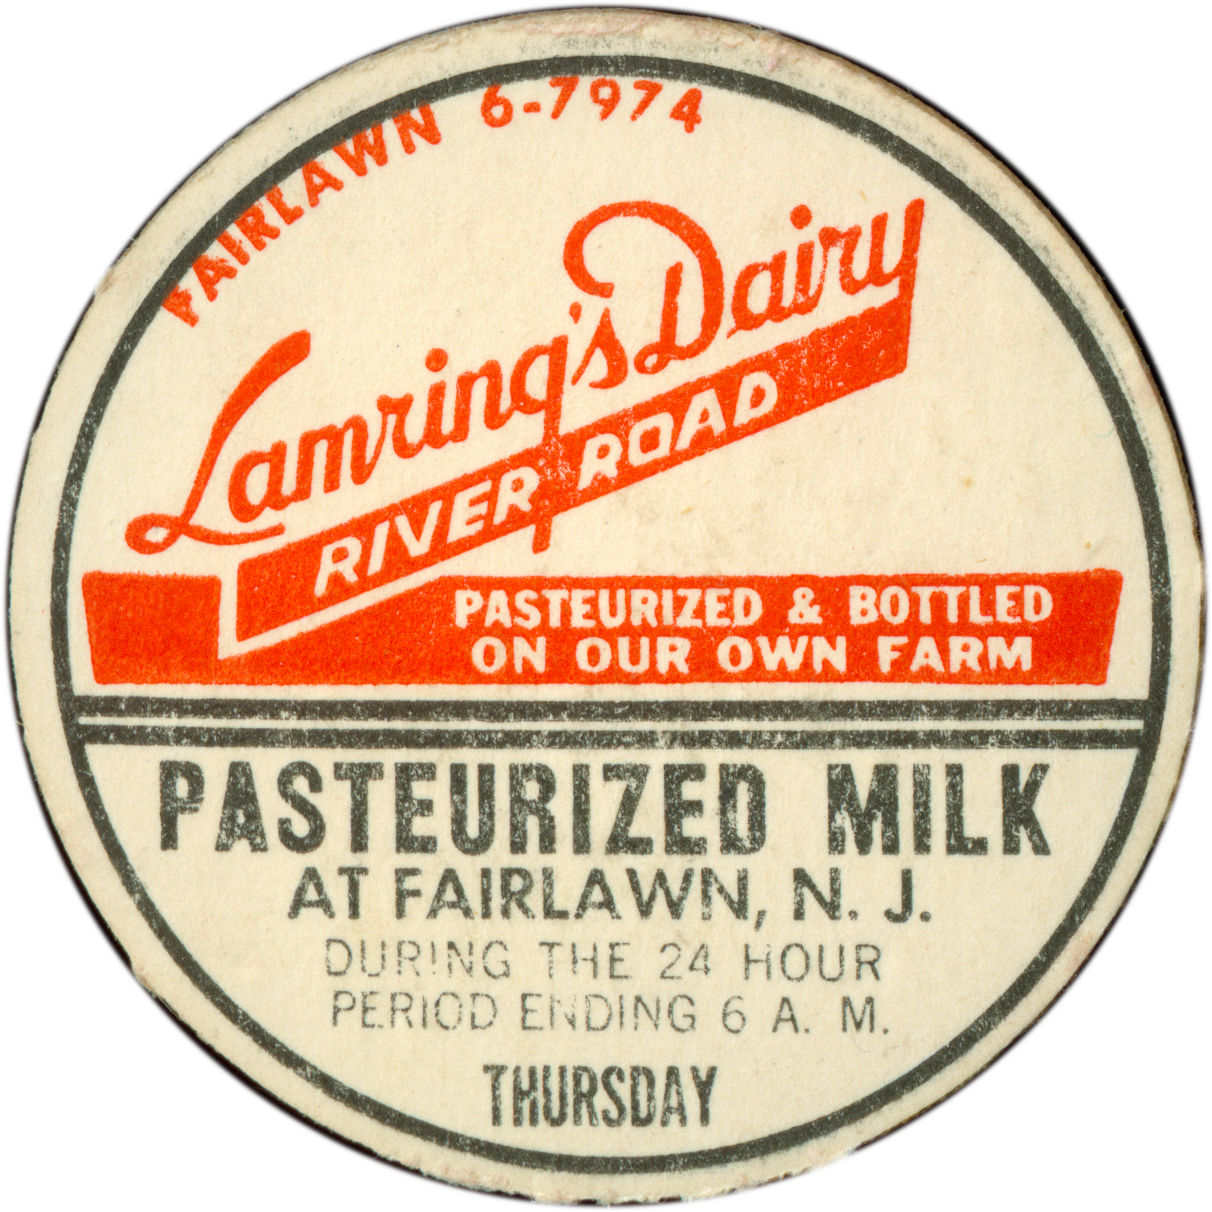 VernacularCircles_0001s_0000_Lamring's-Dairy---River-Road---Pasterurized-Milk.png